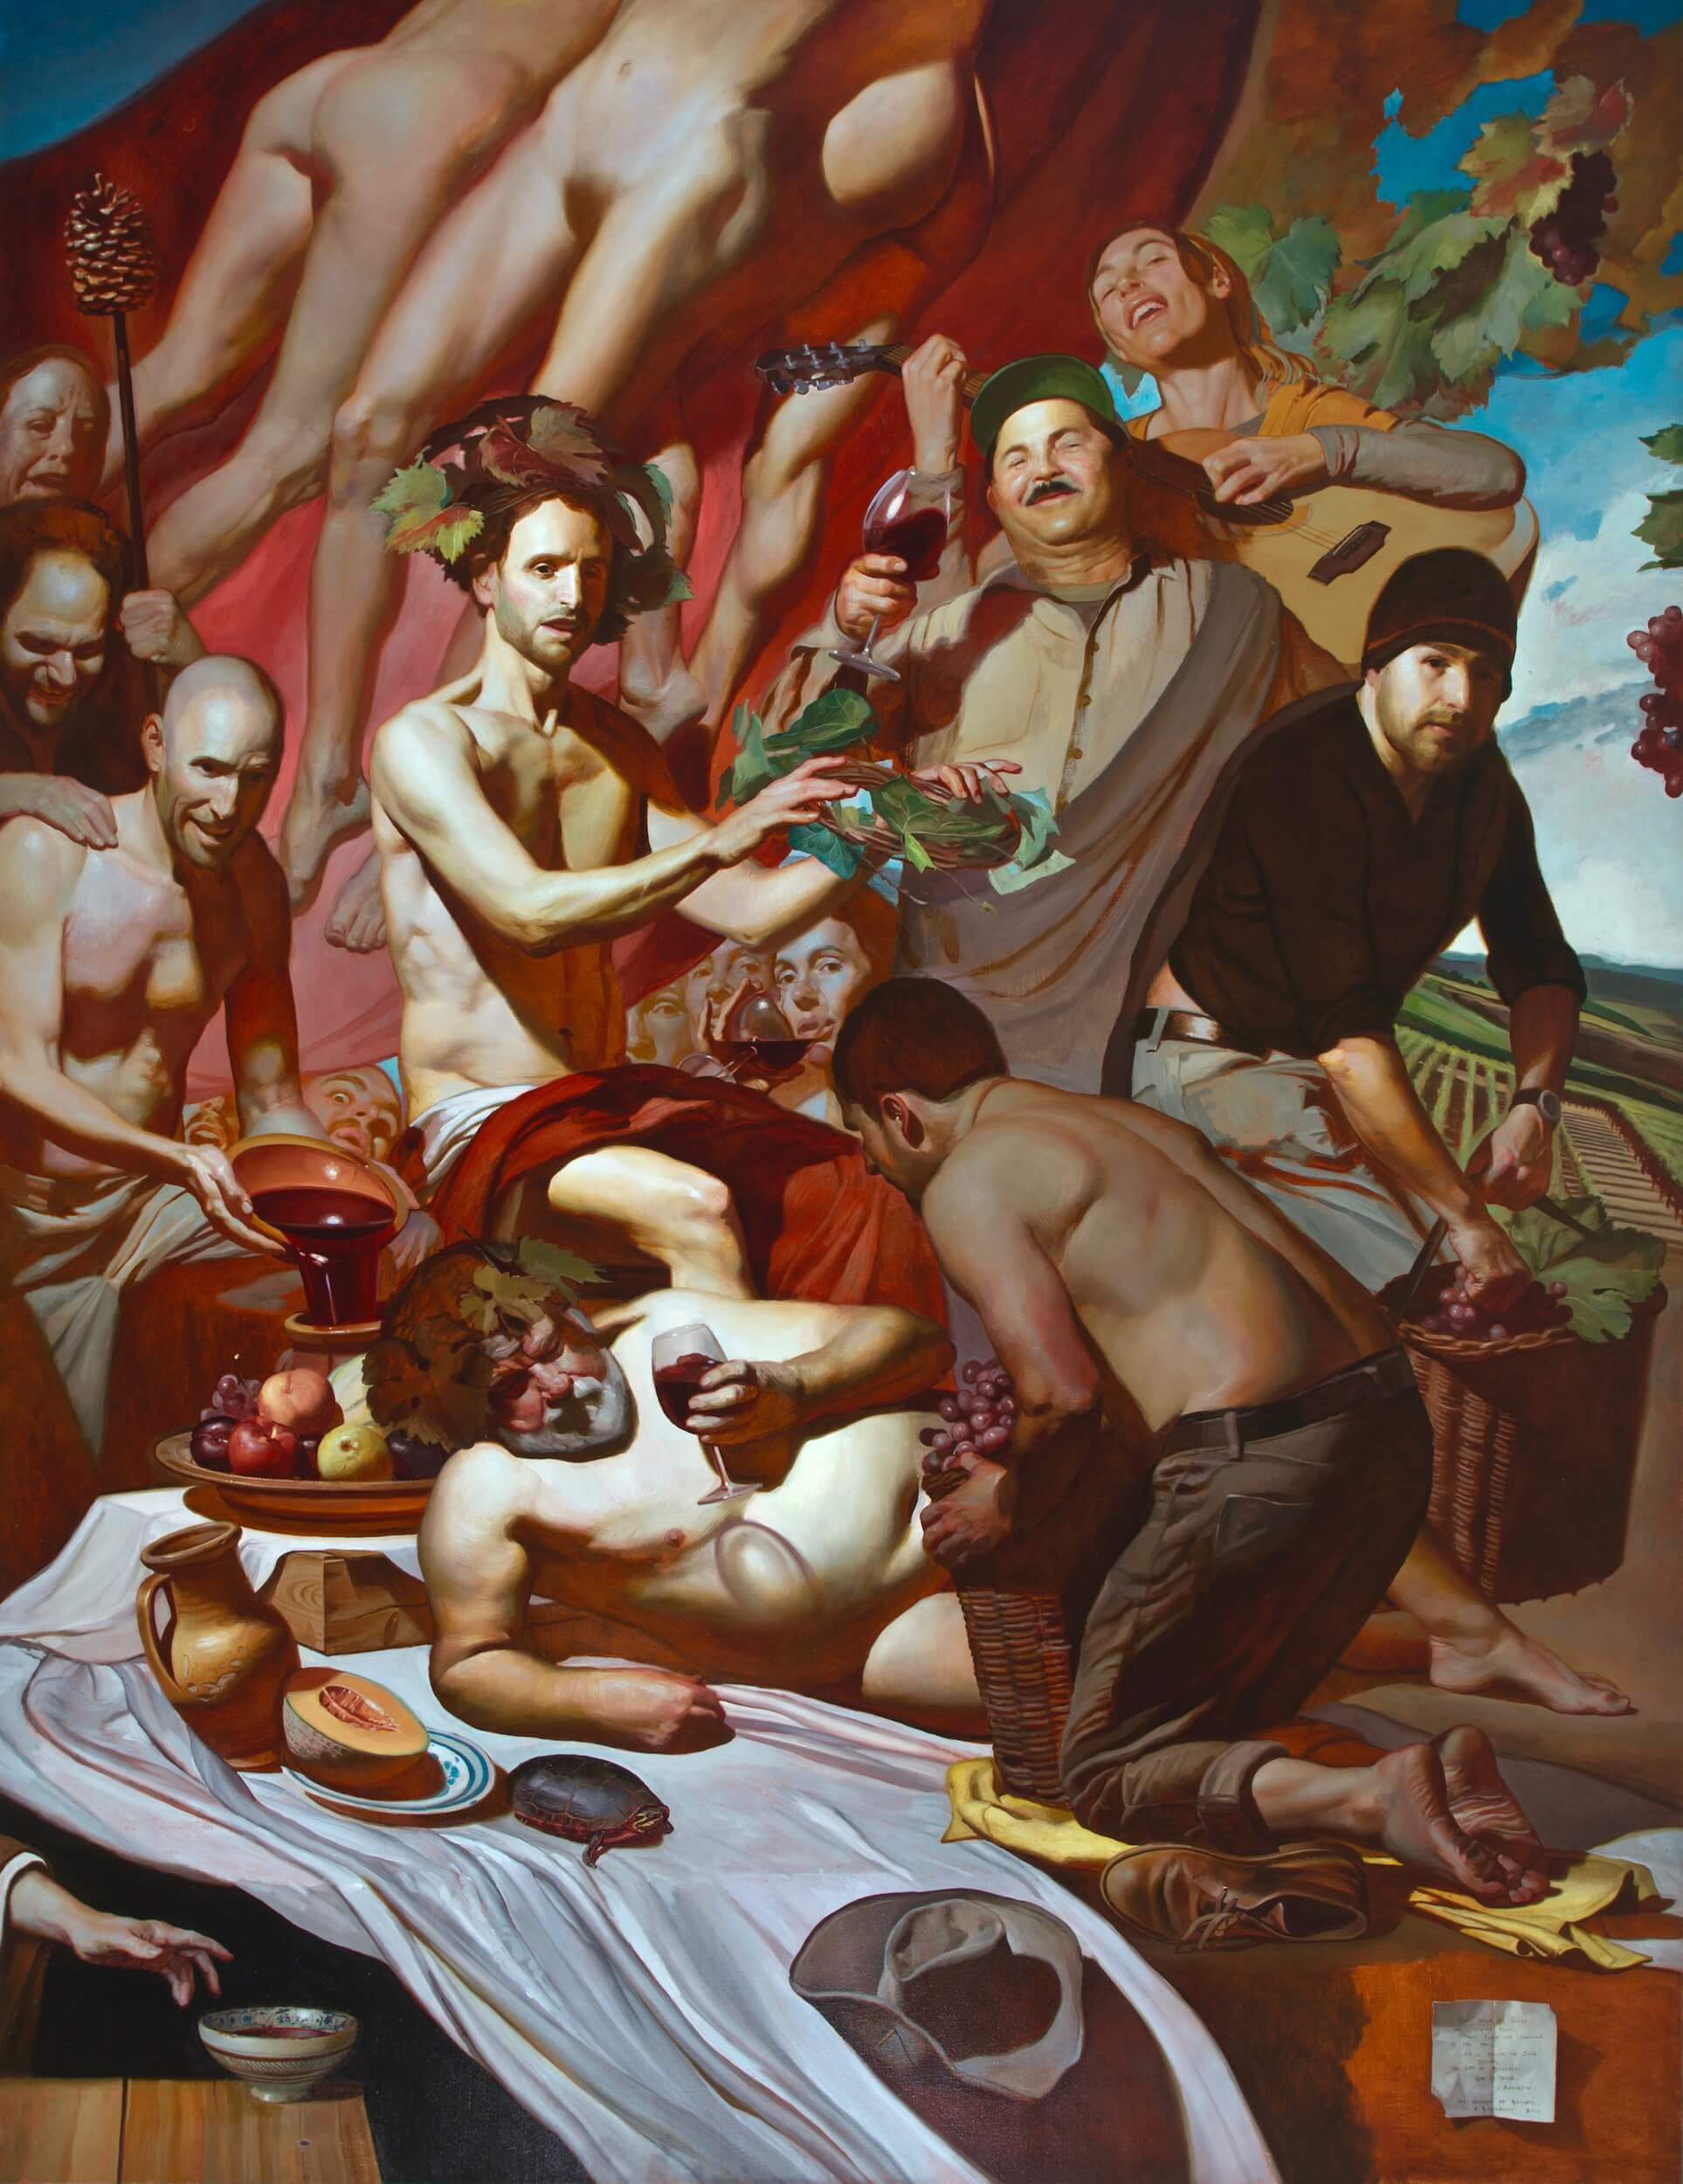 Noah Buchanan, Triumph of Bacchus, 80 x 62, oil on canvas (courtesy of Dacia Gallery)